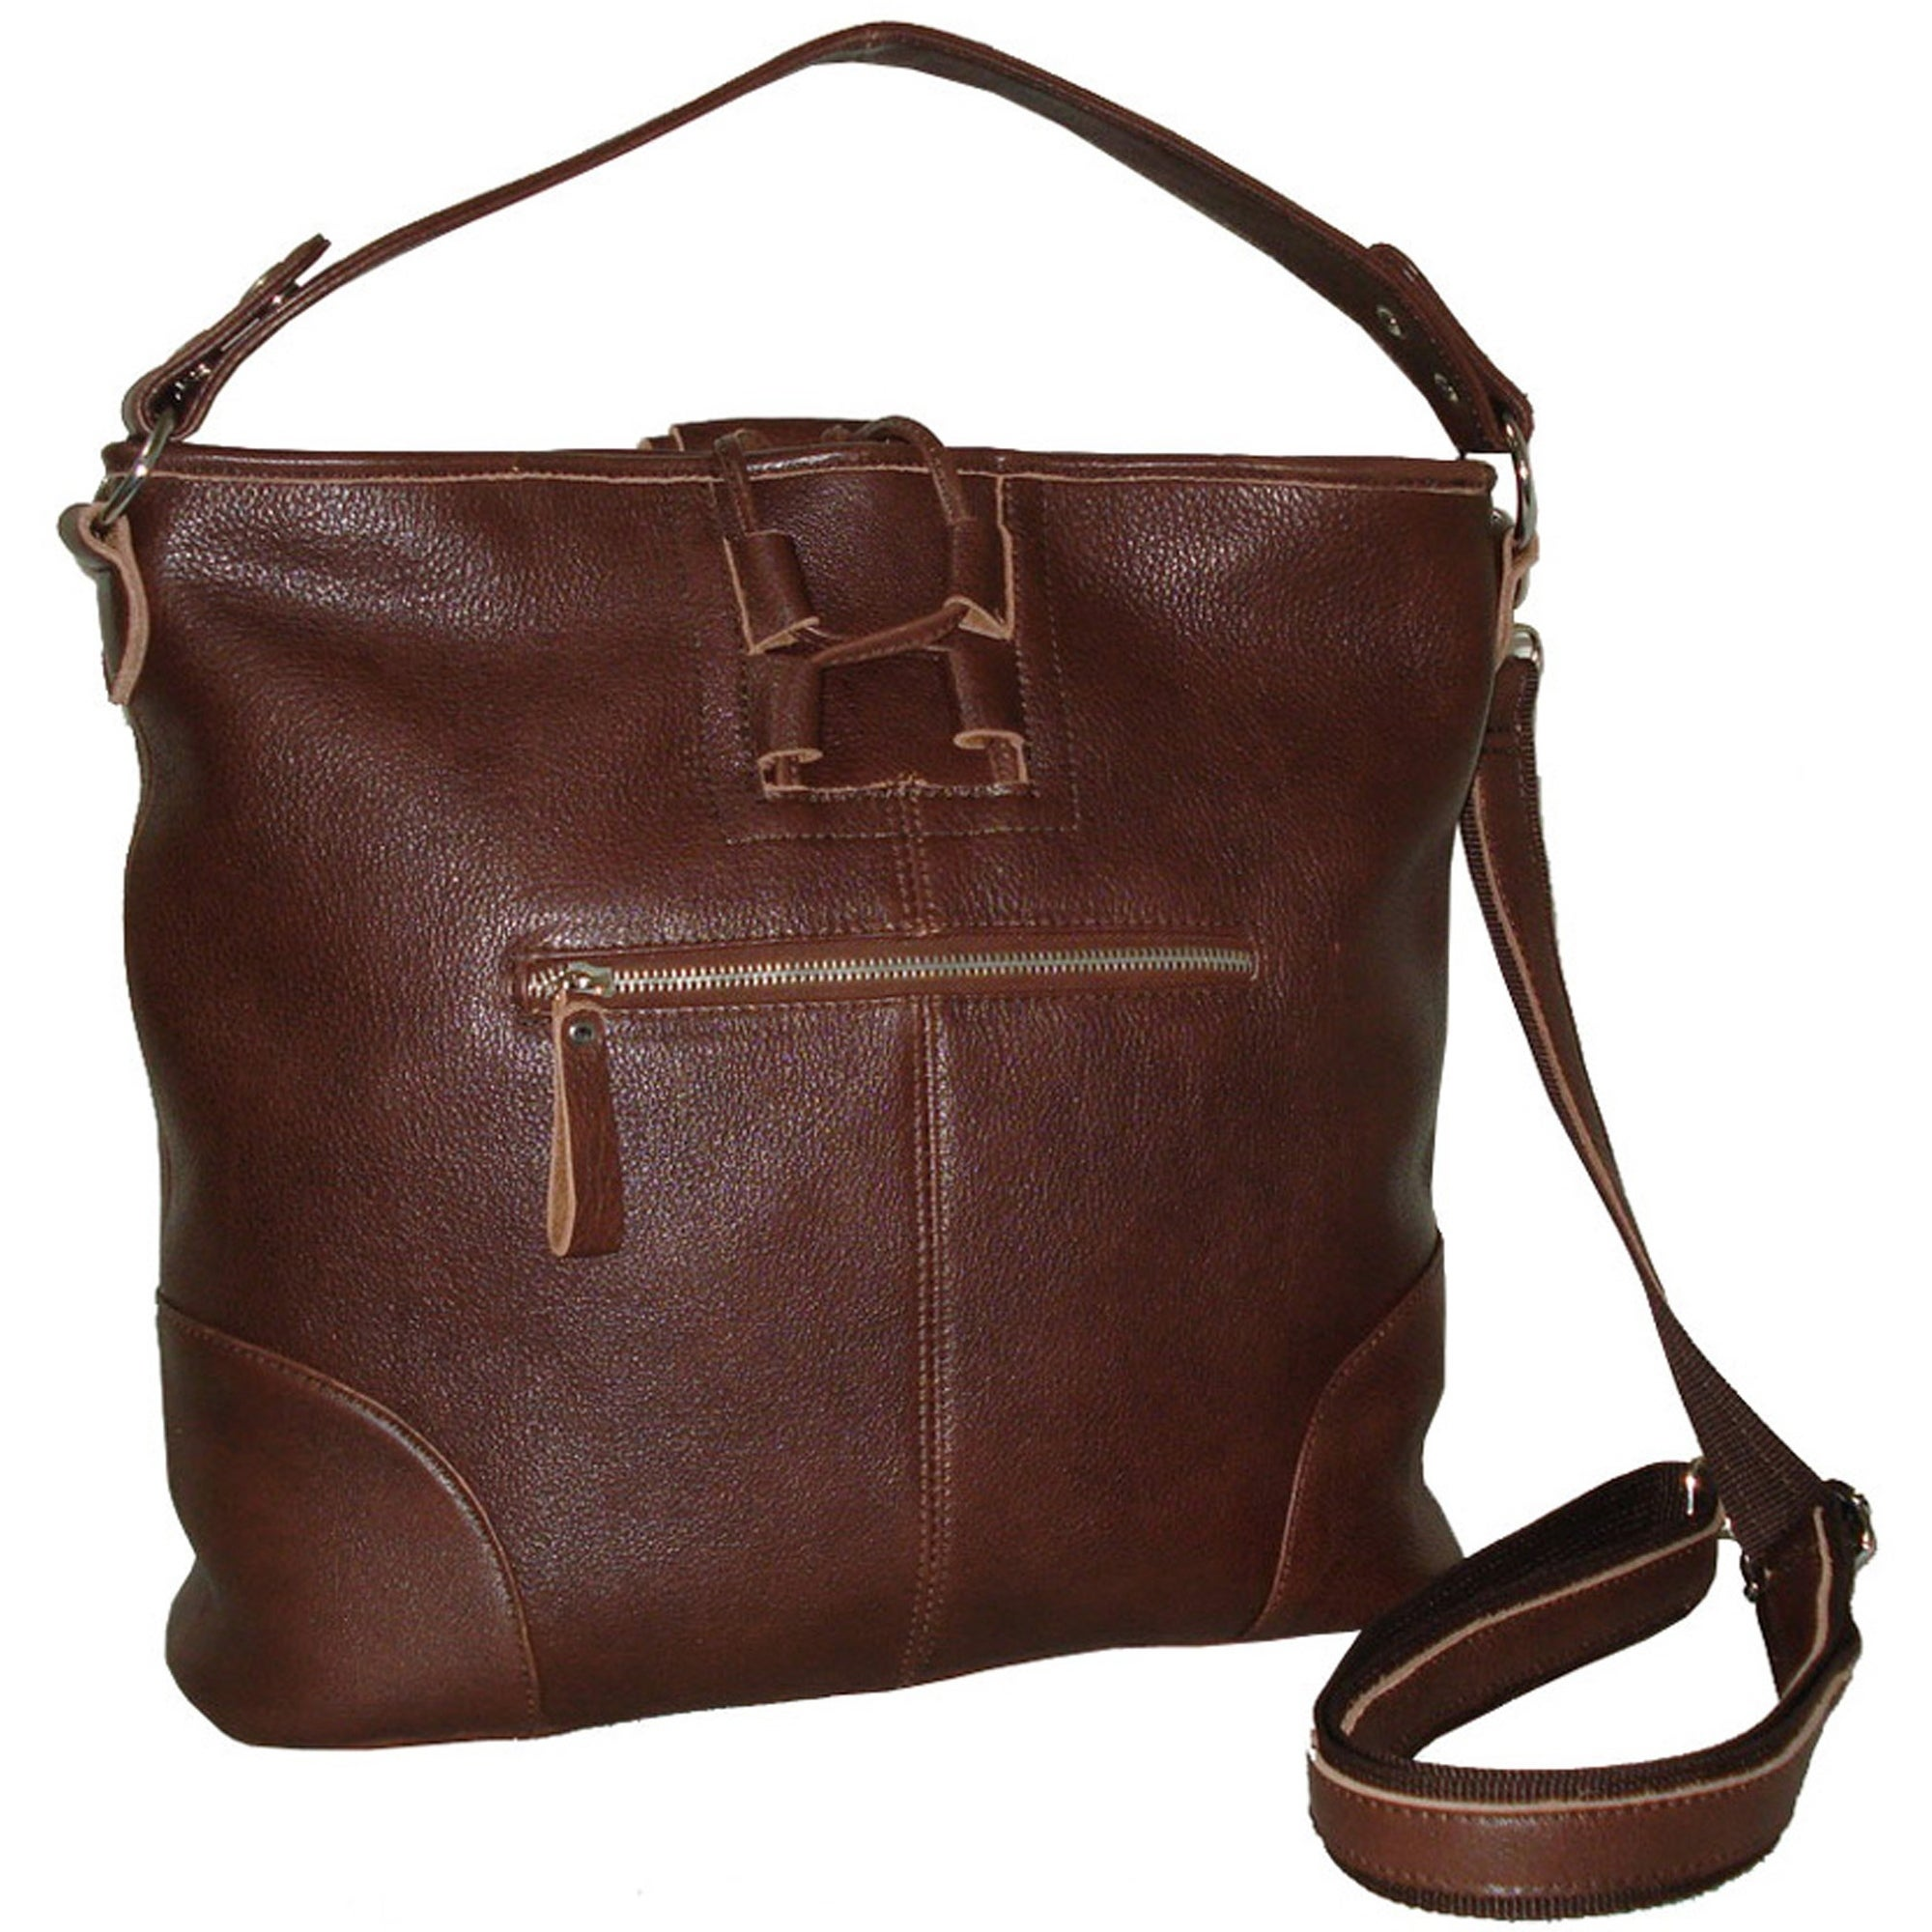 046499676 Greatest Amerileather 'Mandy' Woven Leather Handbag - Free Shipping Today  HY12